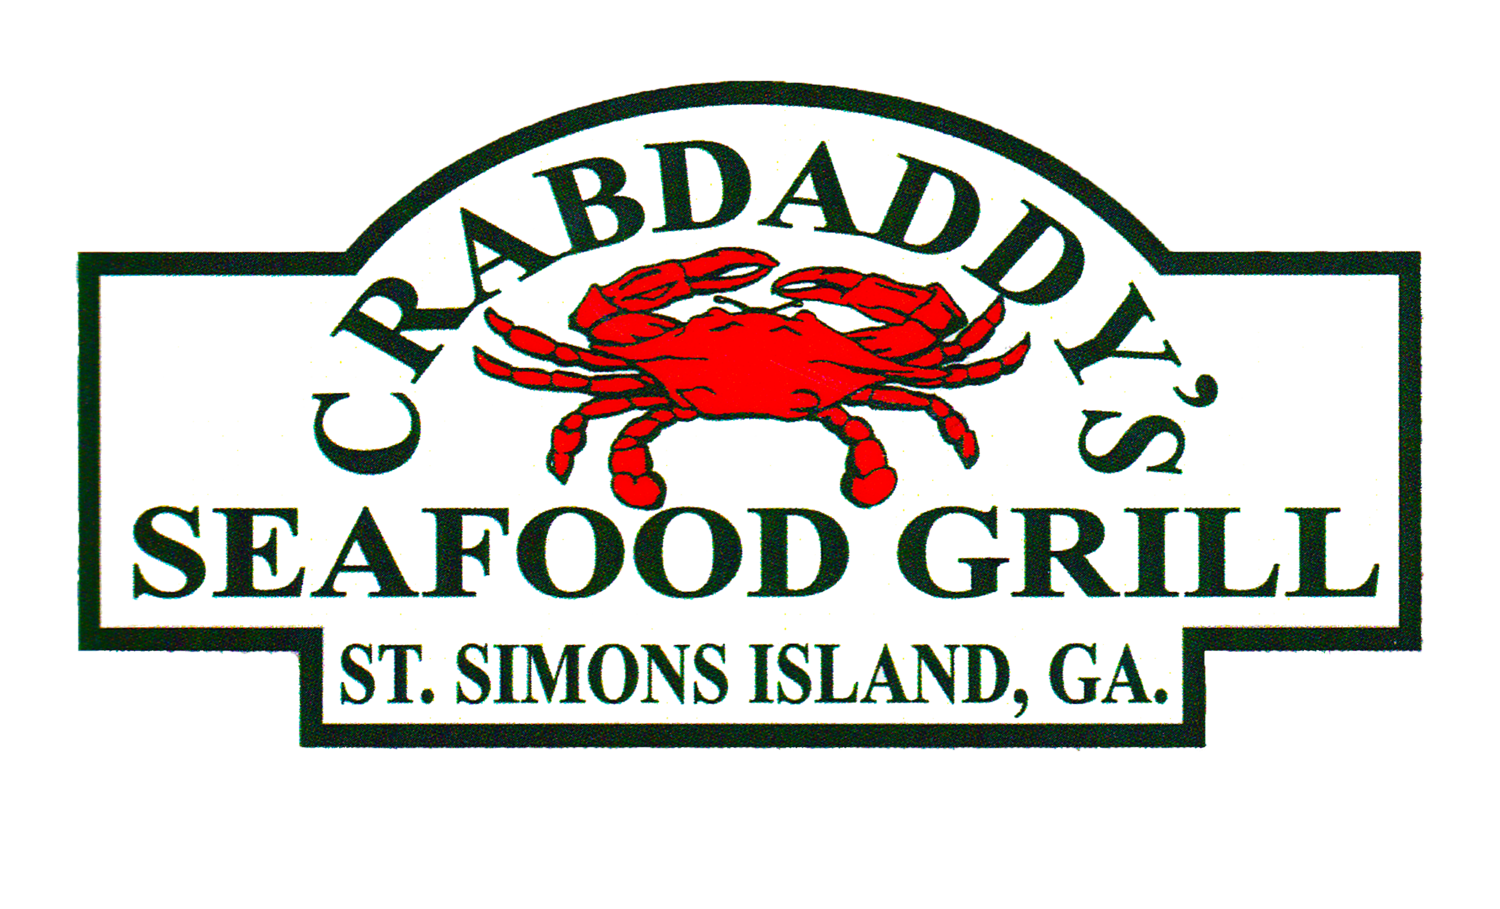 Seafood drawing grilled fish. Crabdaddy s grill